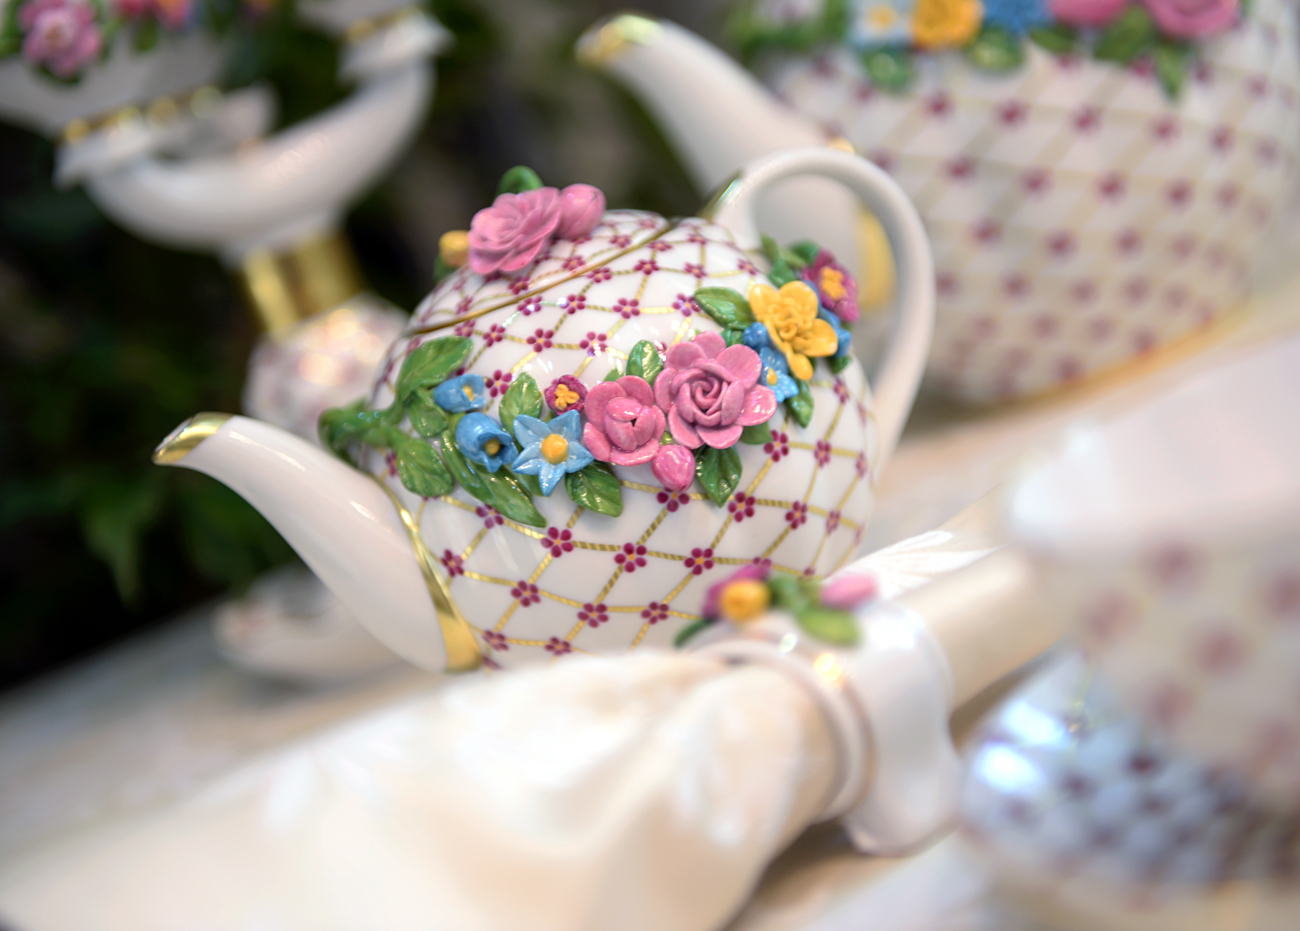 Products of the Imperial Porcelain Factory.